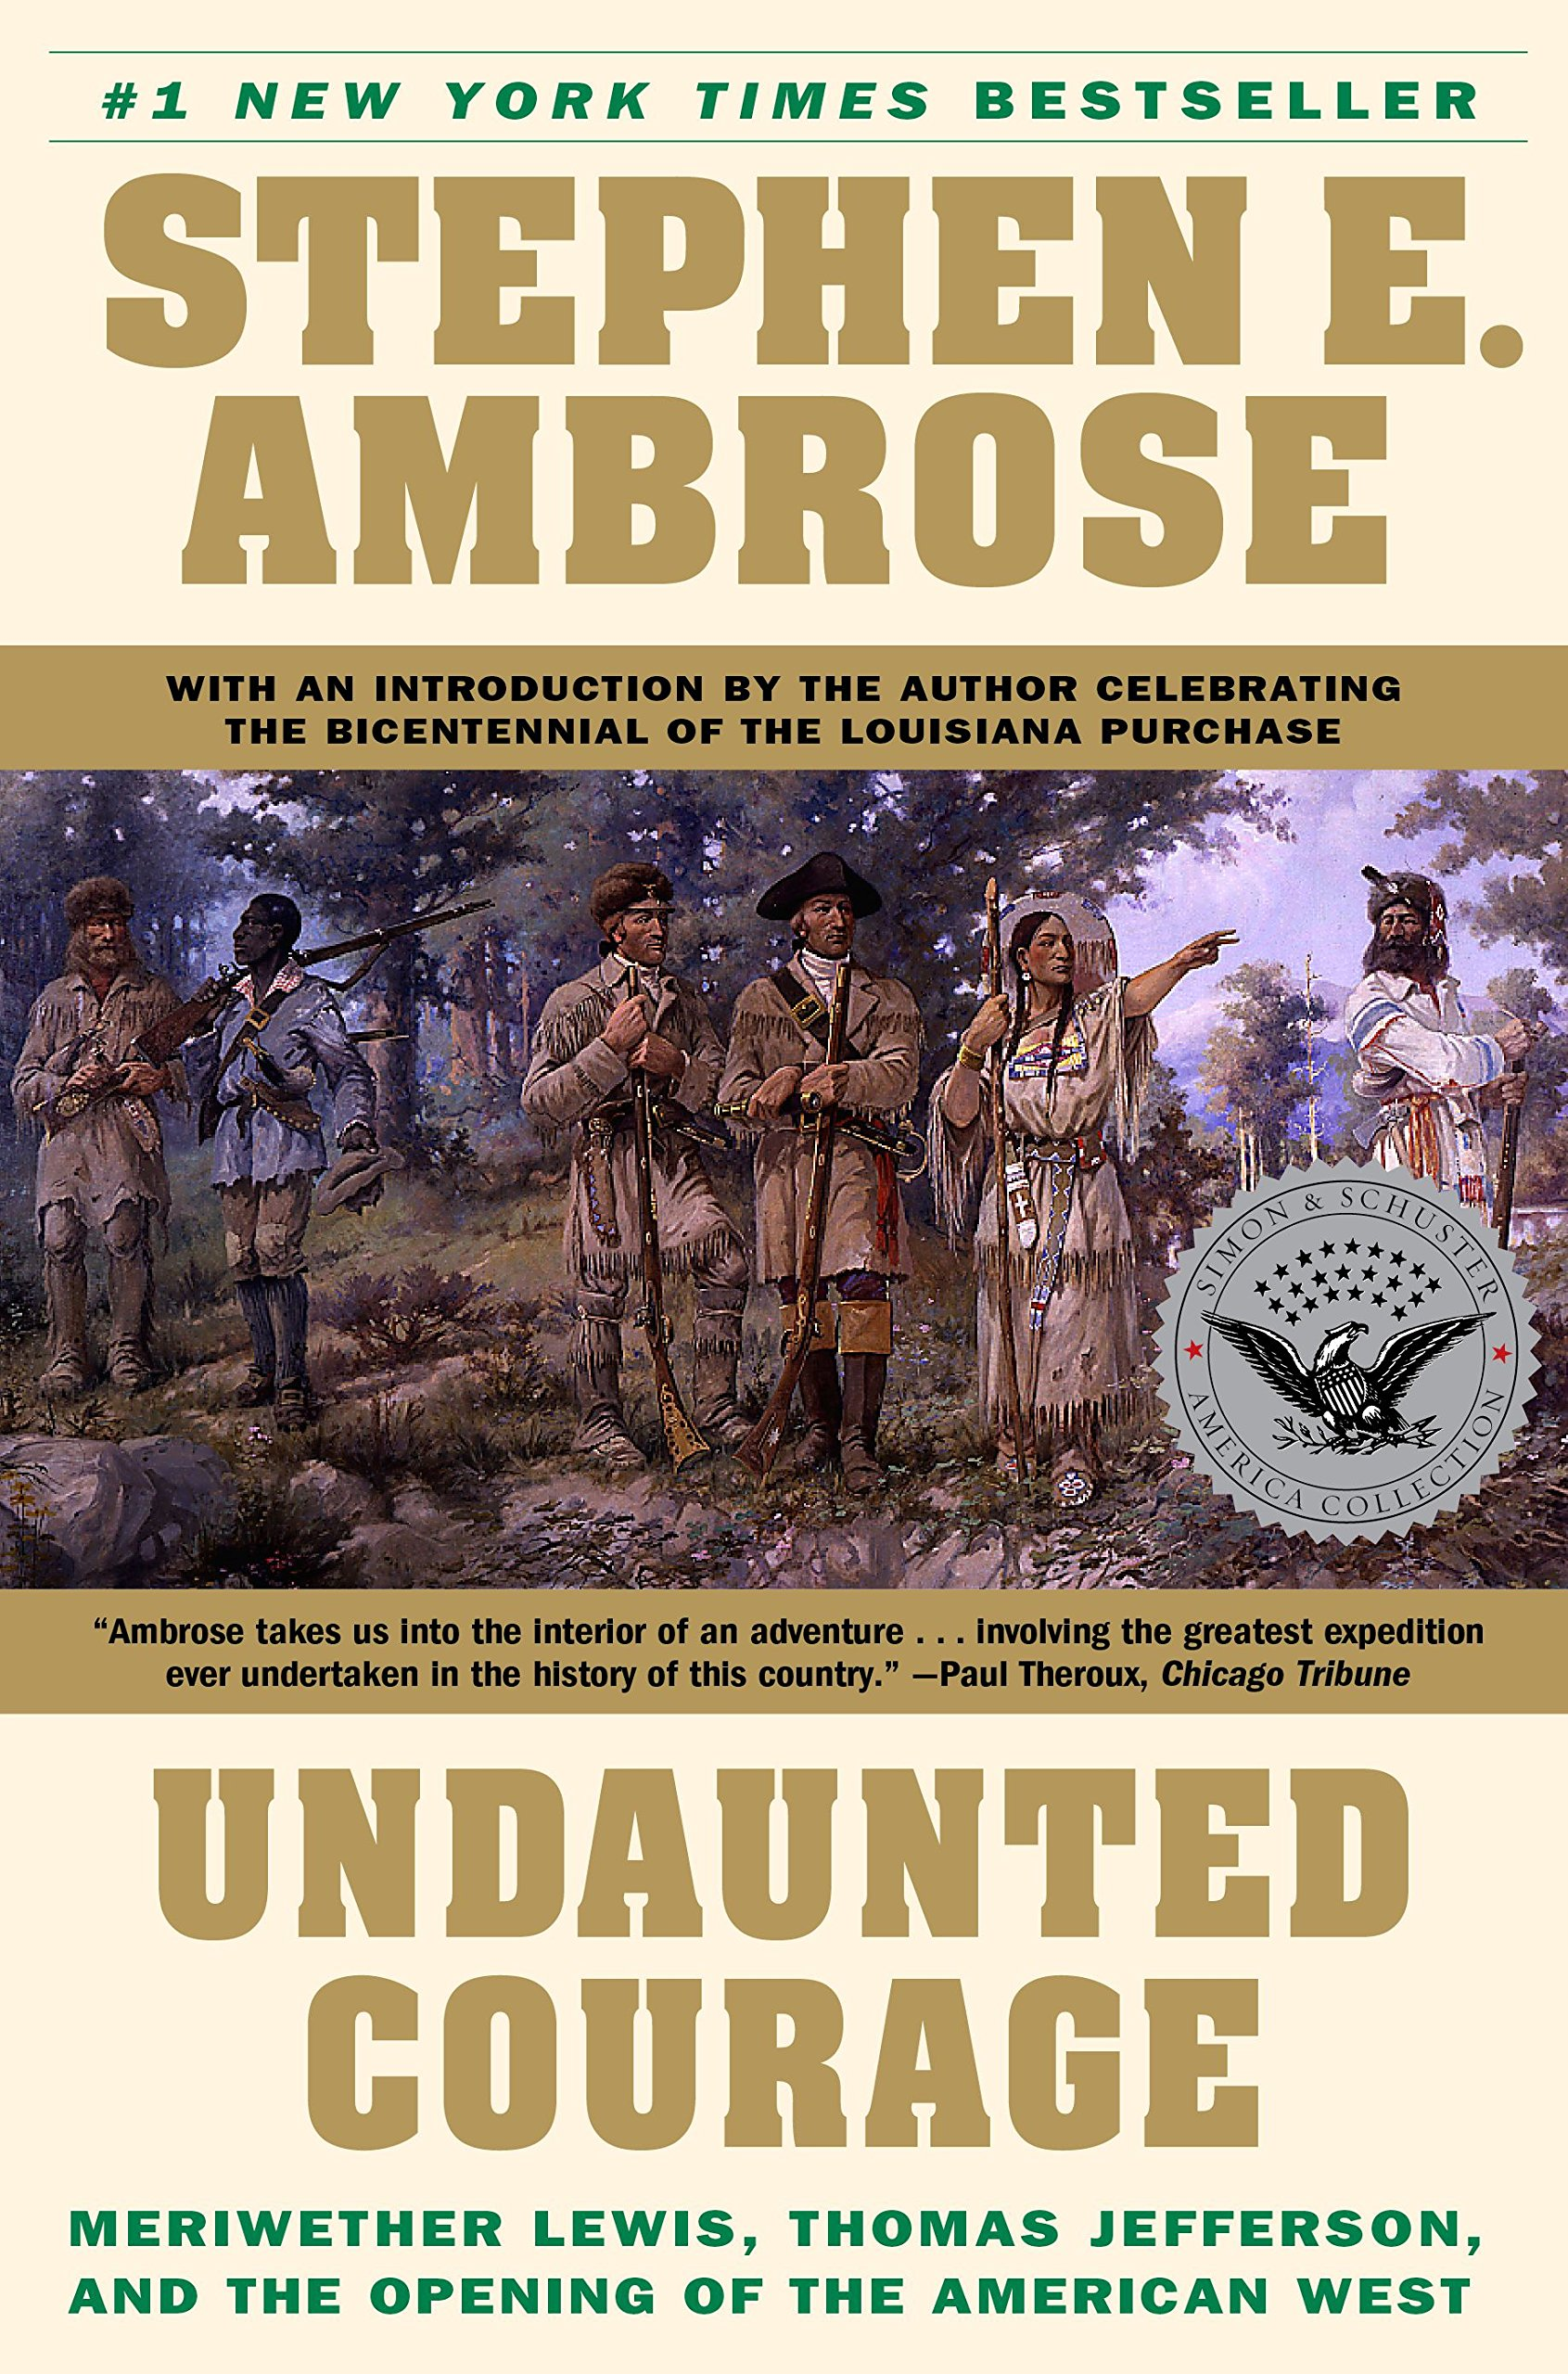 Undaunted Courage: Meriwether Lewis, Thomas Jefferson, and the Opening of the American West Paperback – June 2, 1997 Stephen Ambrose Simon & Schuster 0684826976 USA